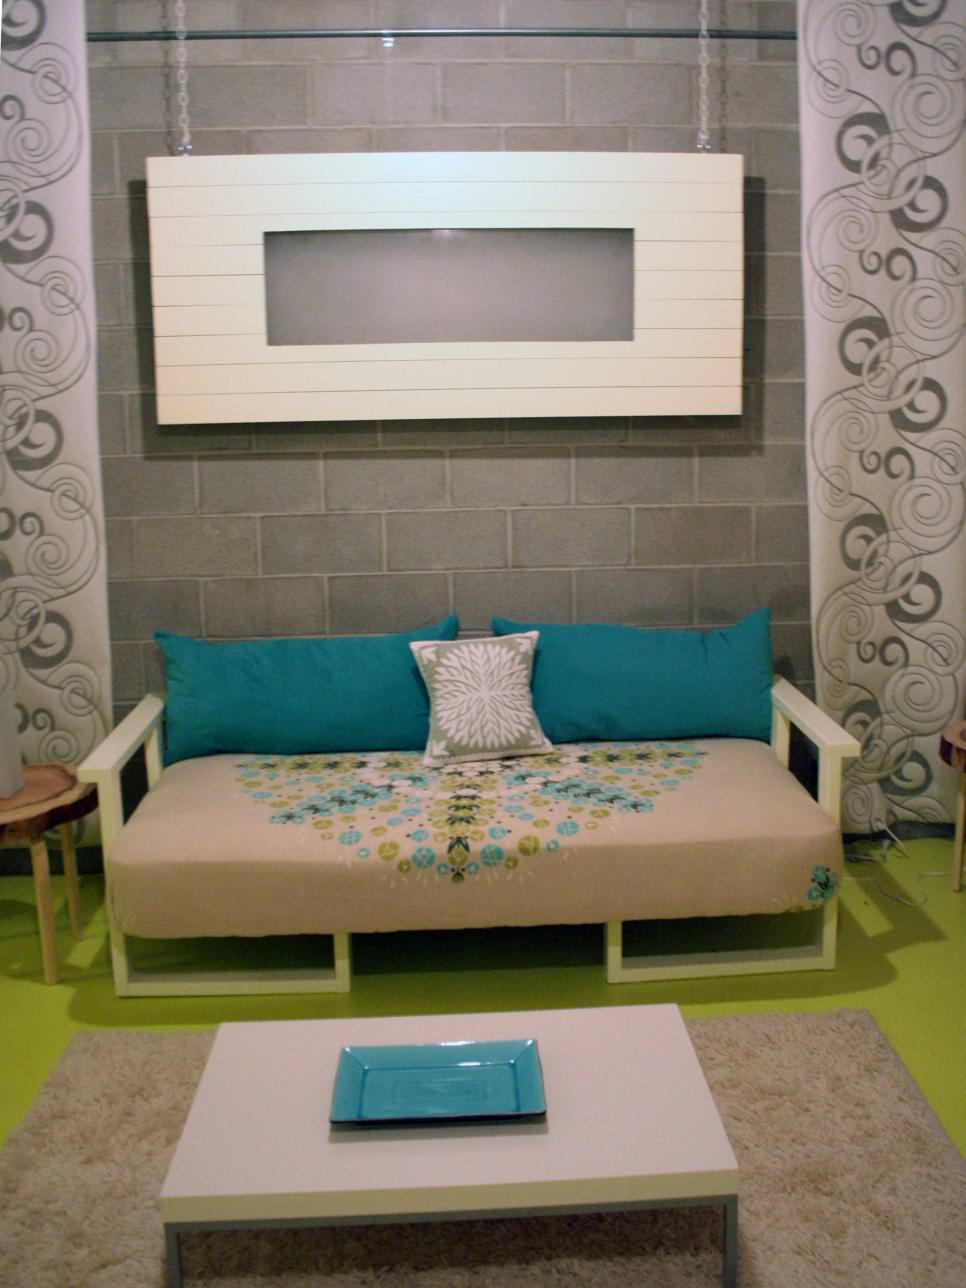 green blue contemporary room with cinder block walls design - Cinder Block Wall Design